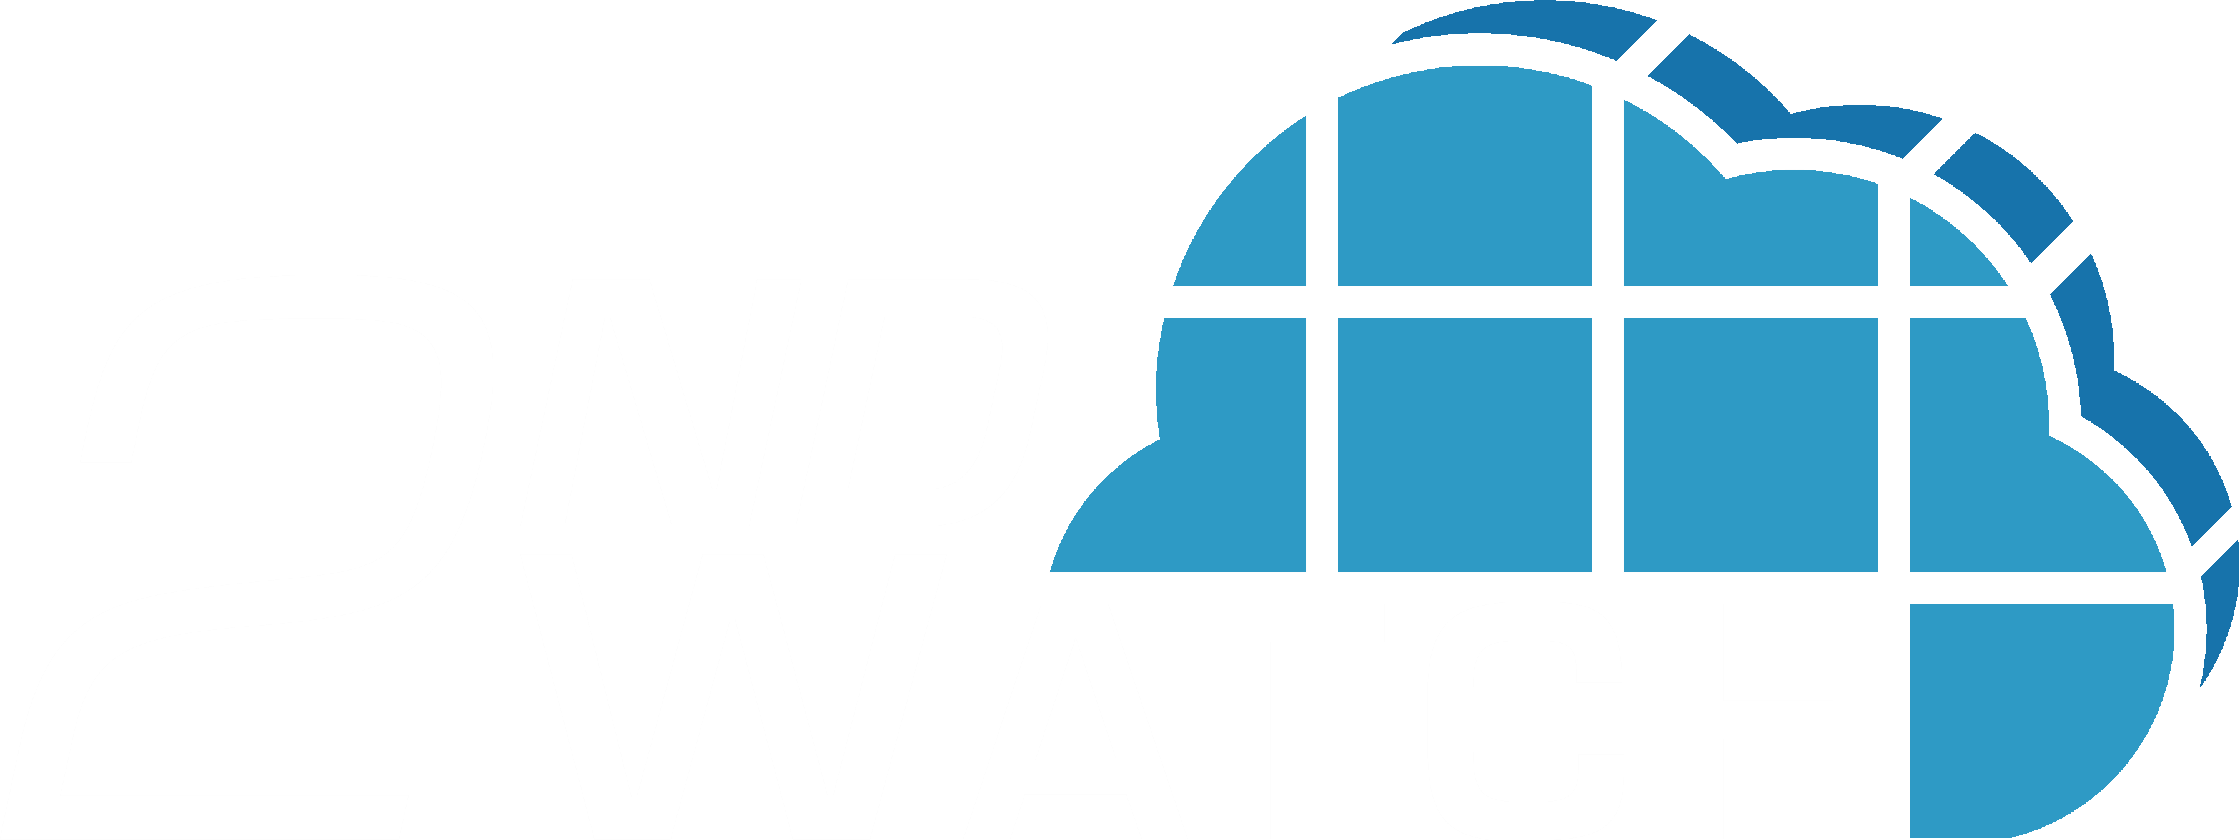 2nd Watch Logo_white text blue cloud.png